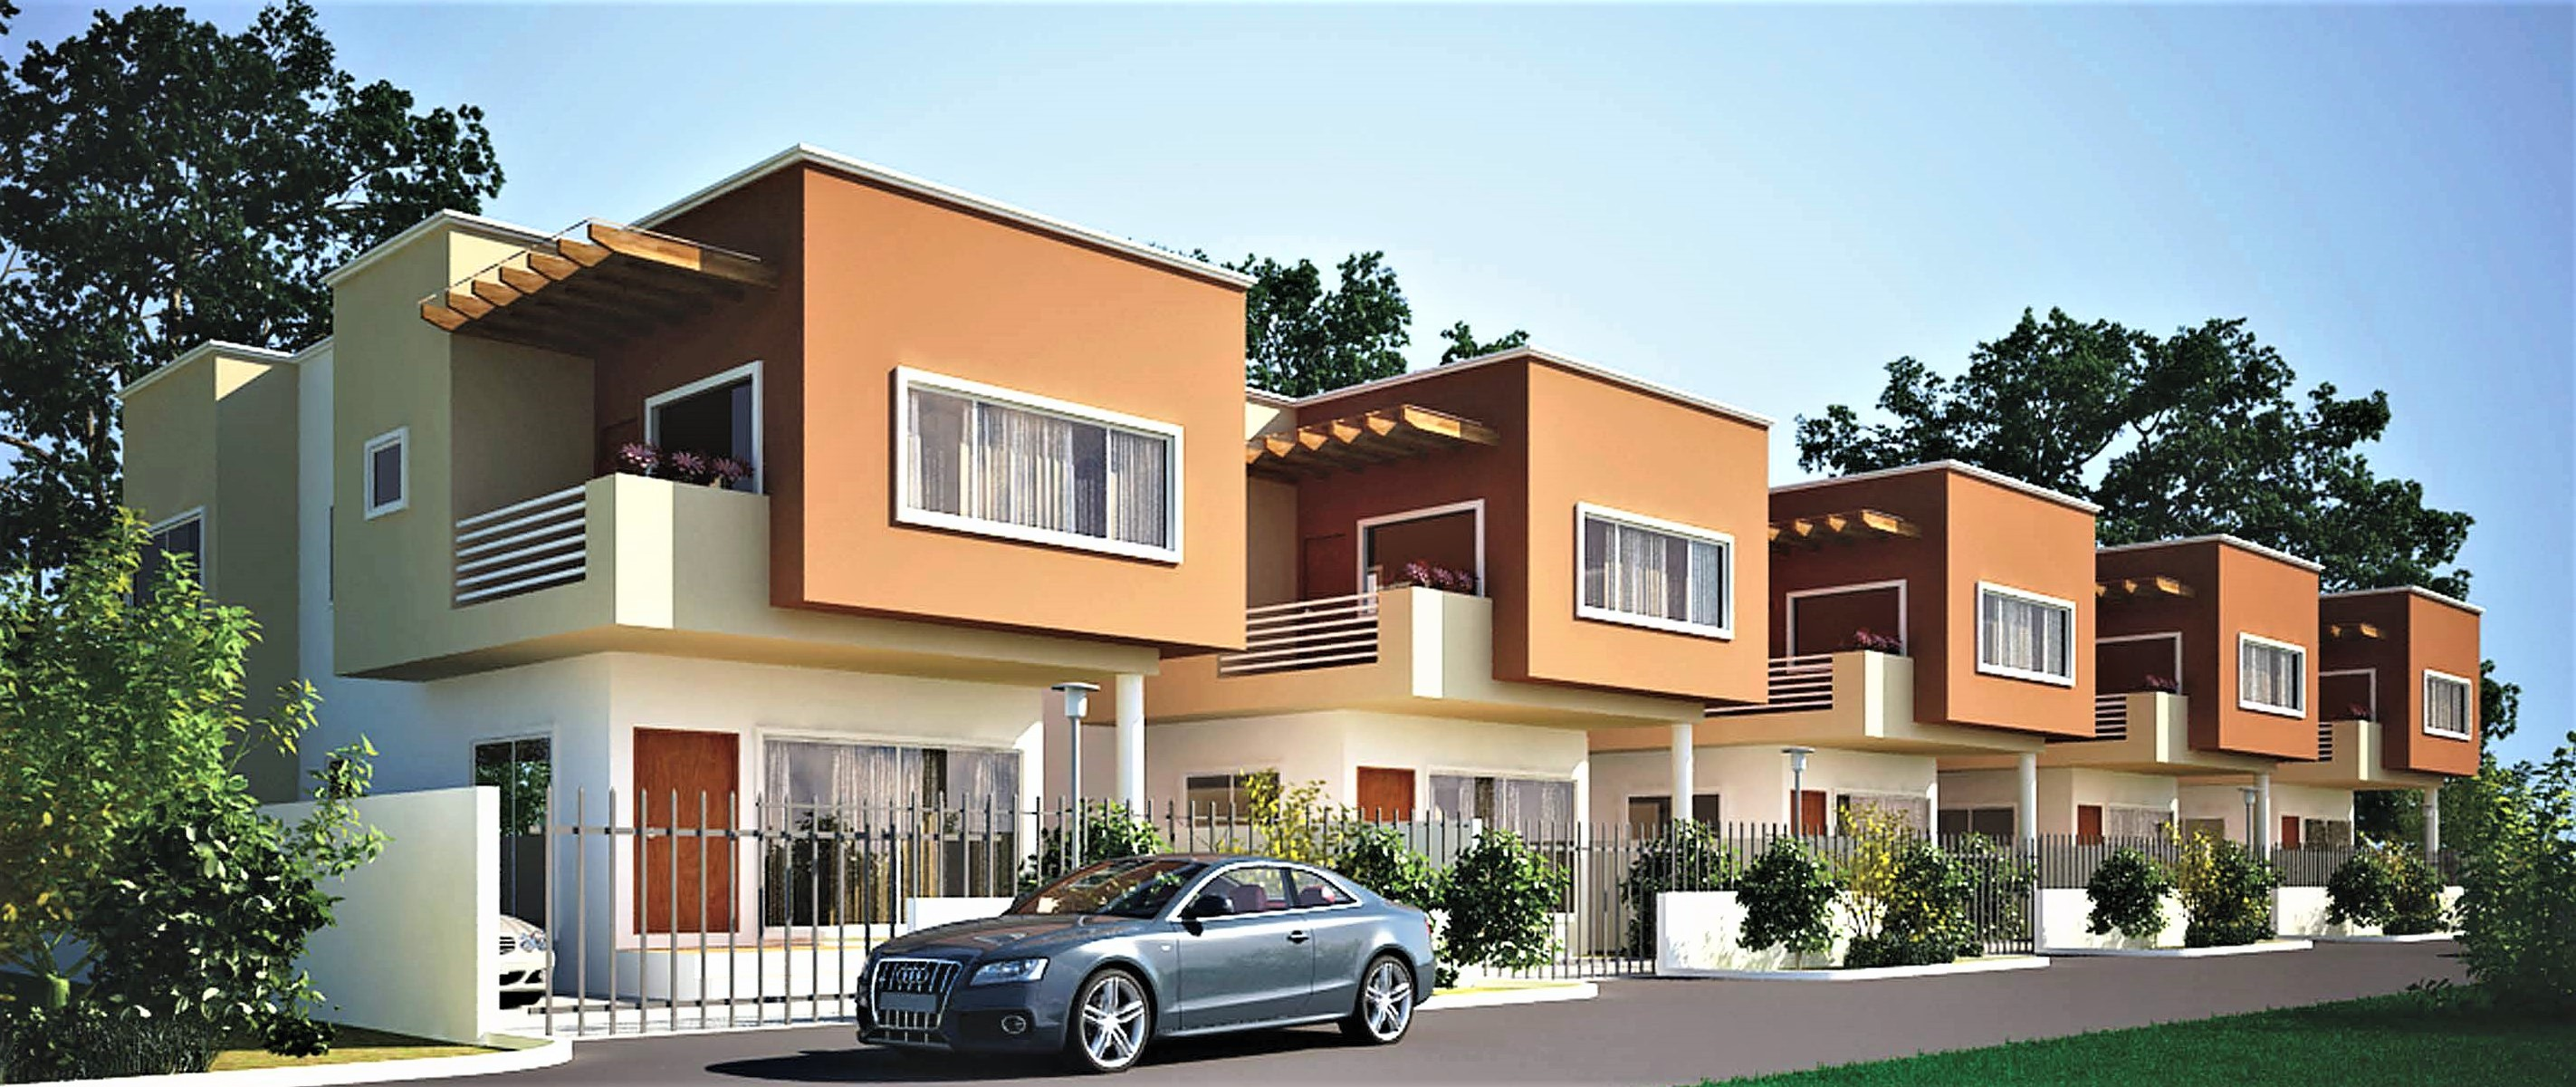 Premier homes 3 bedrooms townhouse abelemkpe Townhouse layout 3 bedrooms